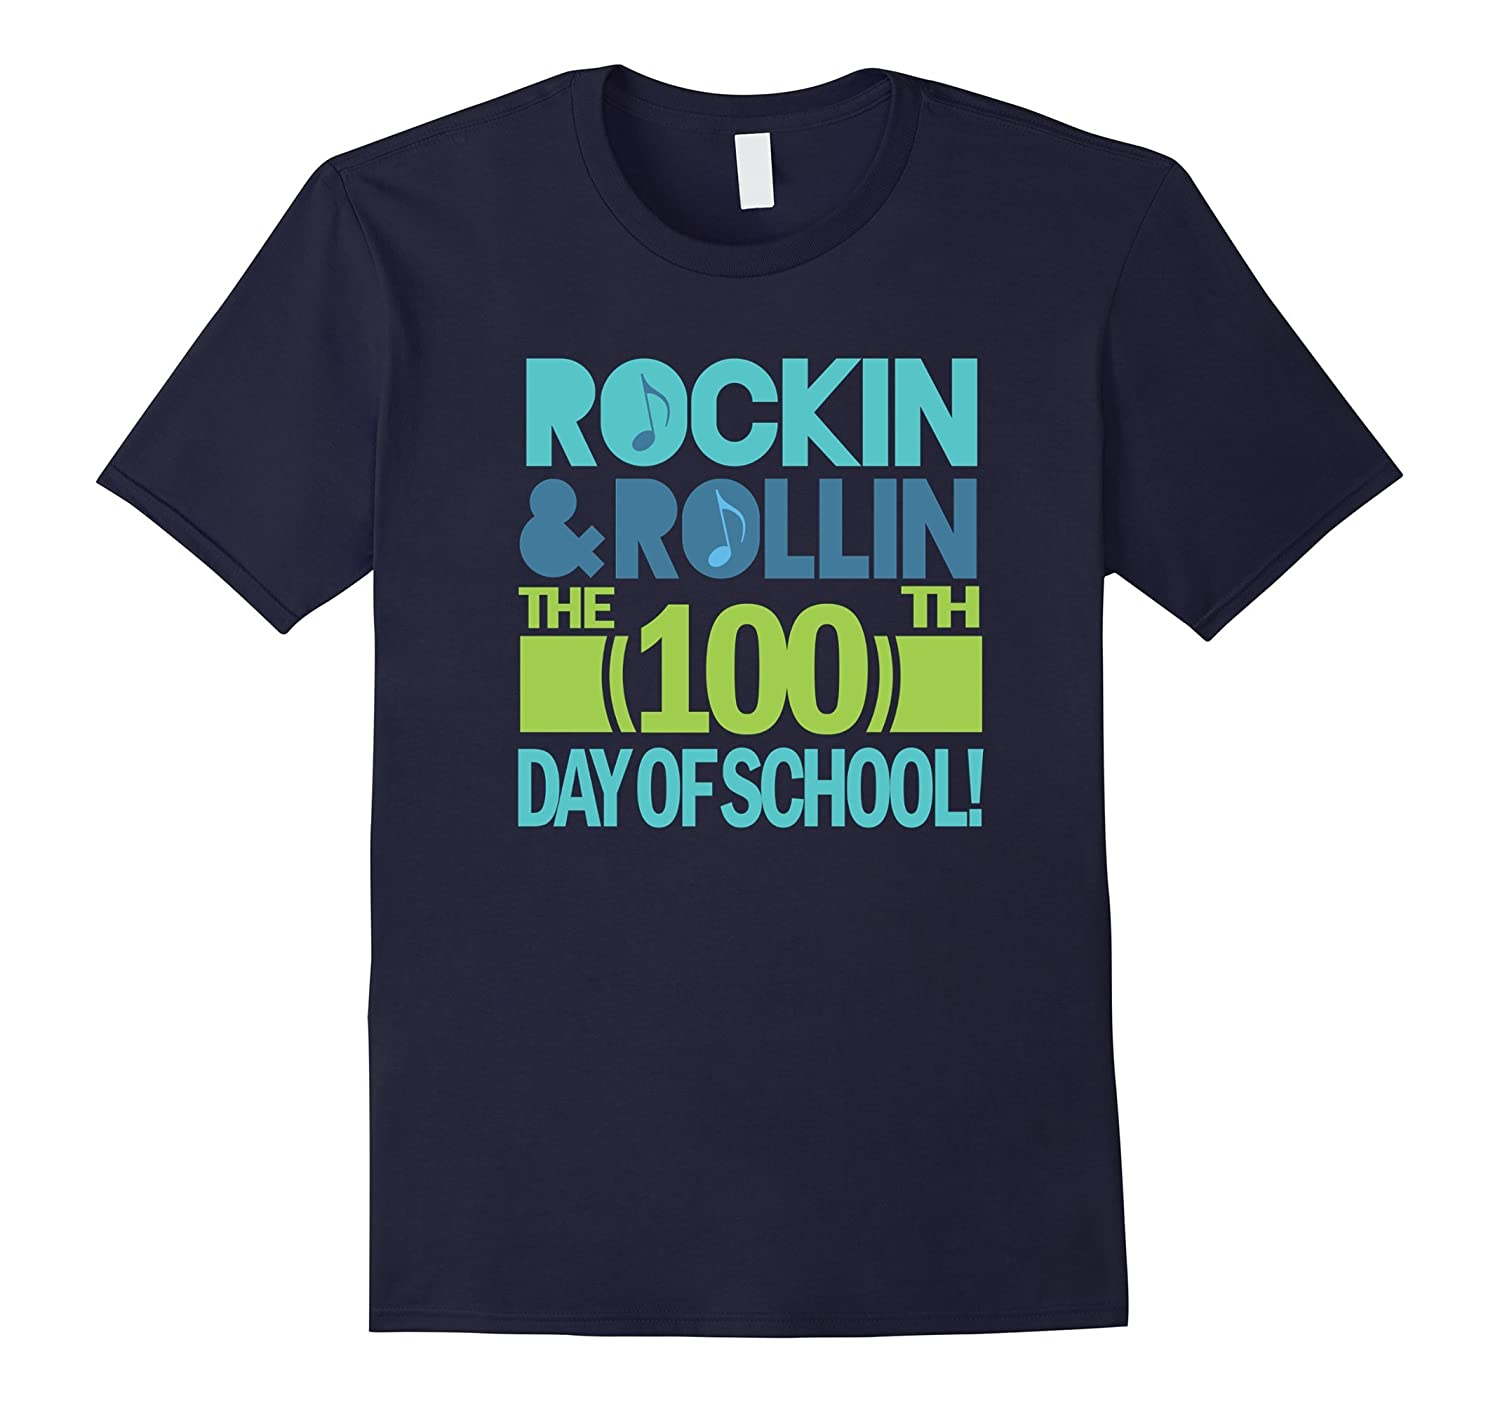 100th Day Of School T-shirt 100 Days Party Celebration-ah my shirt one gift